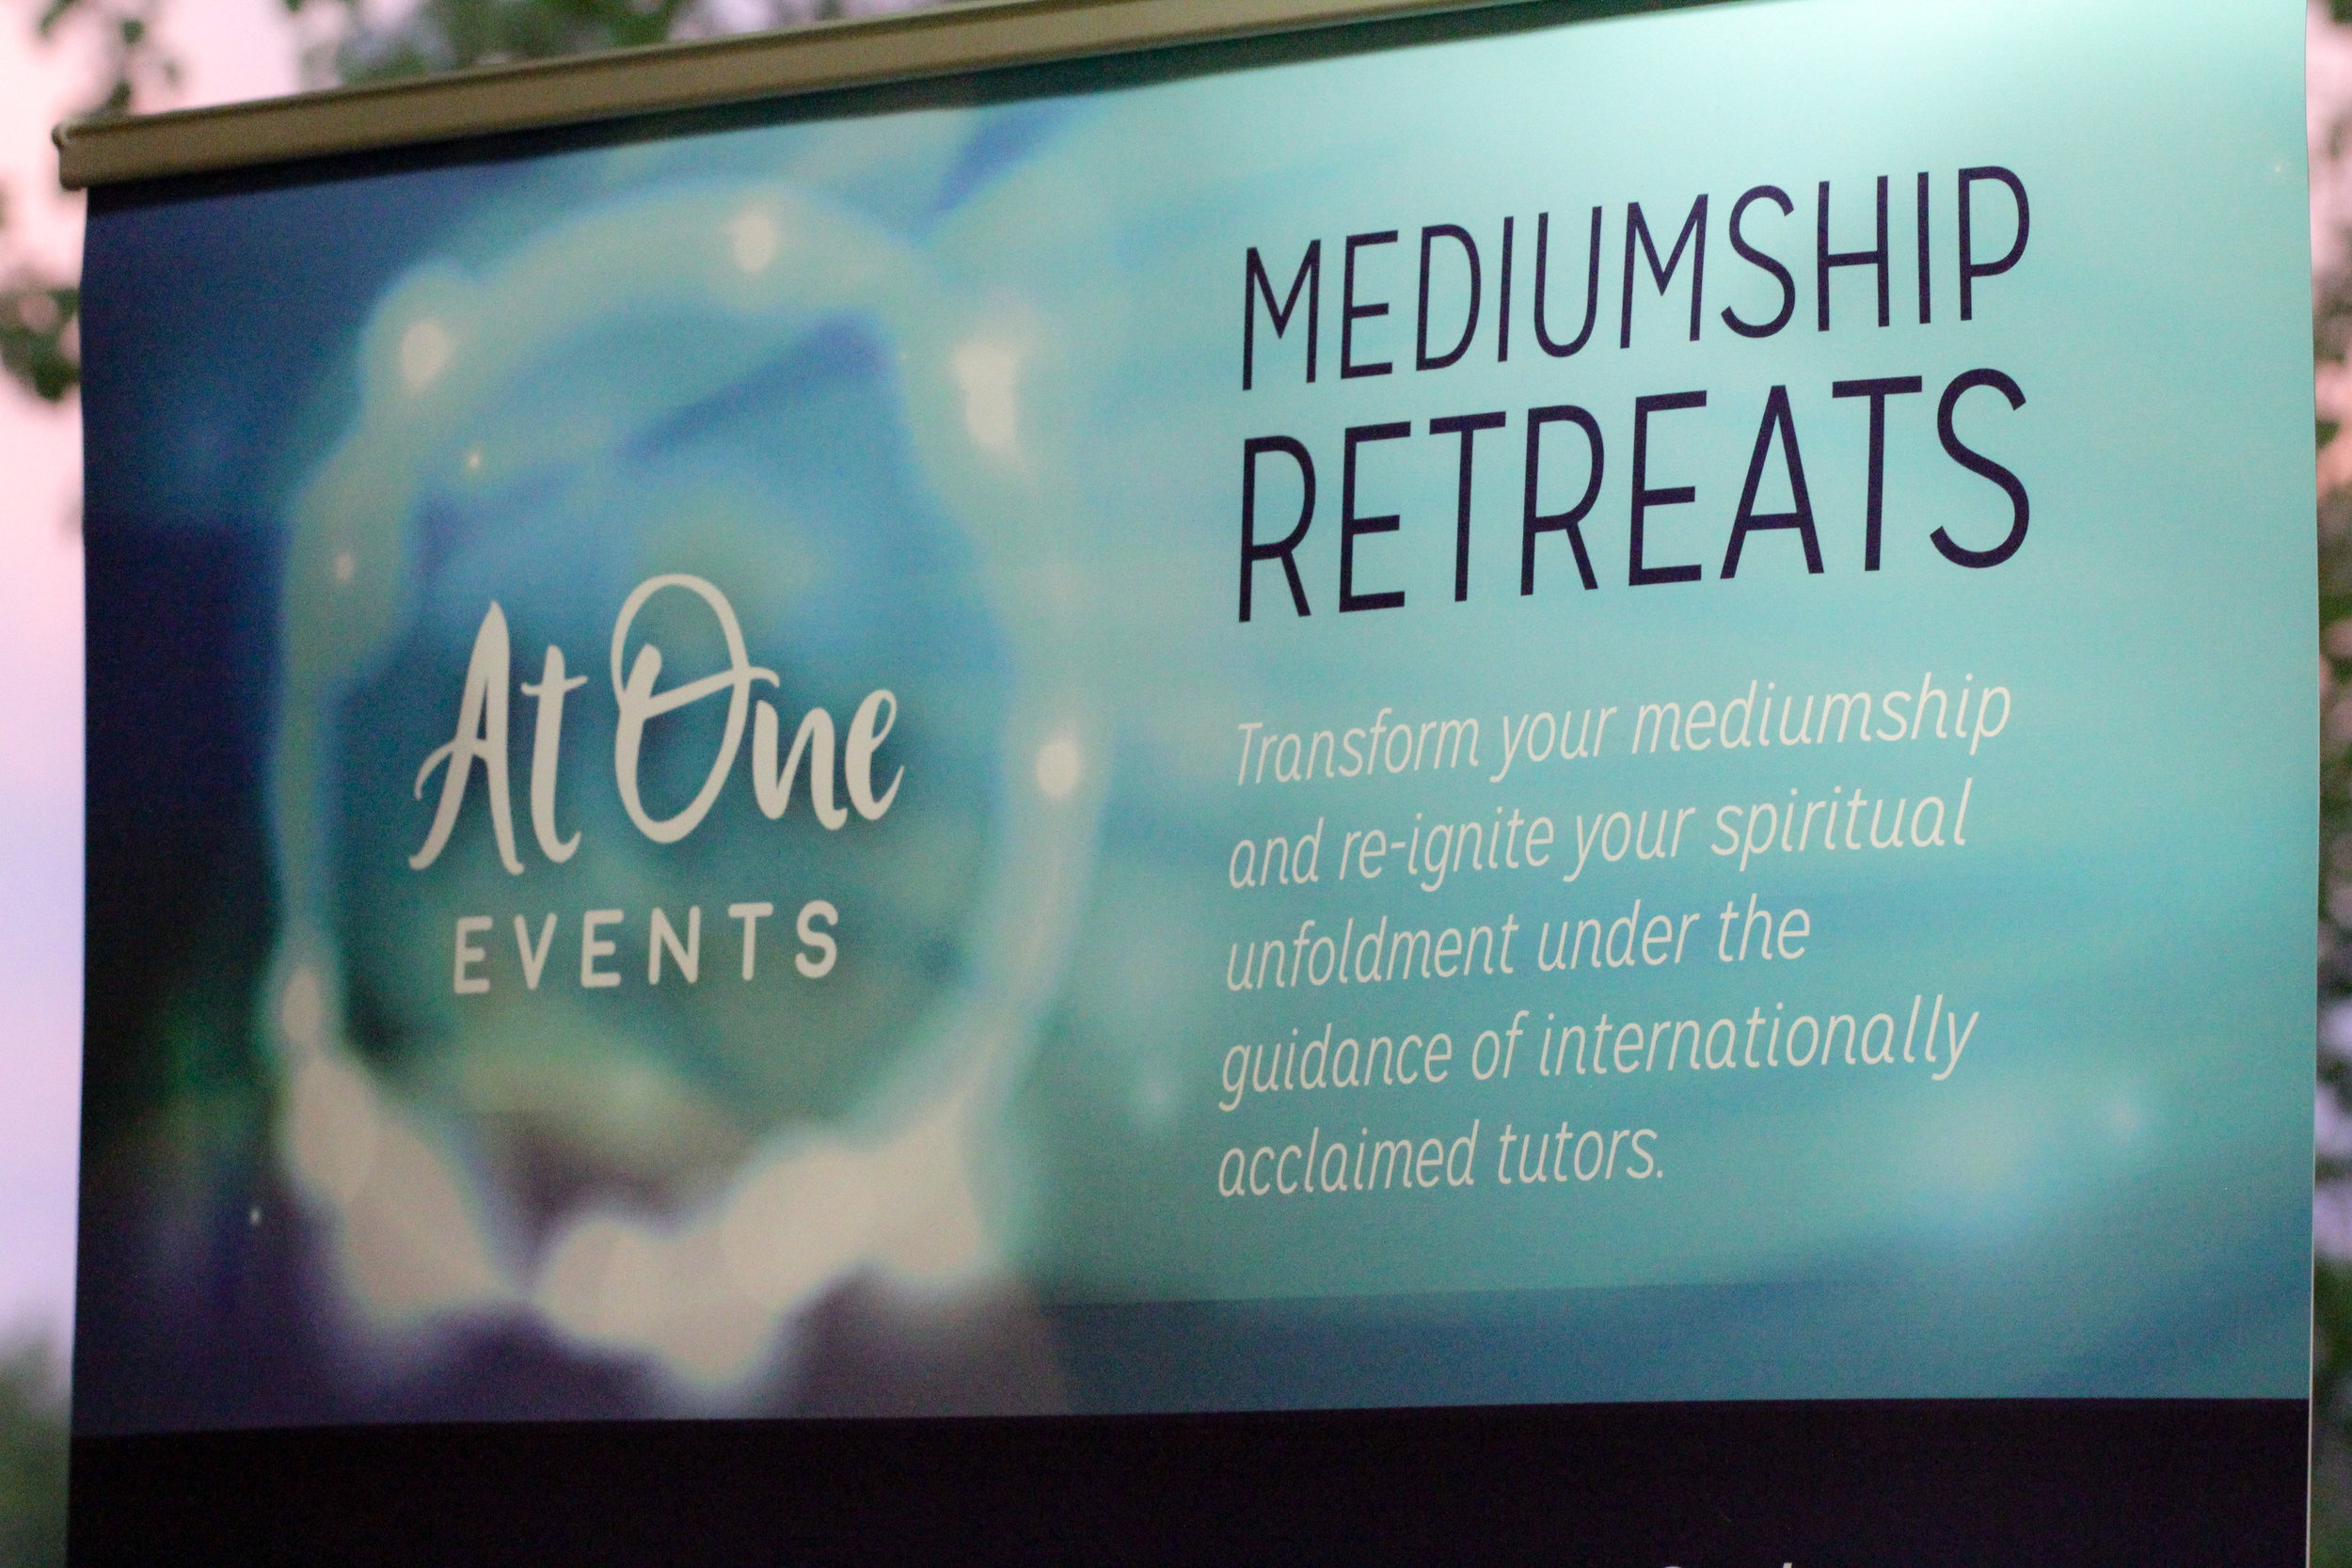 Event company focused on workshops & retreats supporting mediumship and Spiritual philosophy